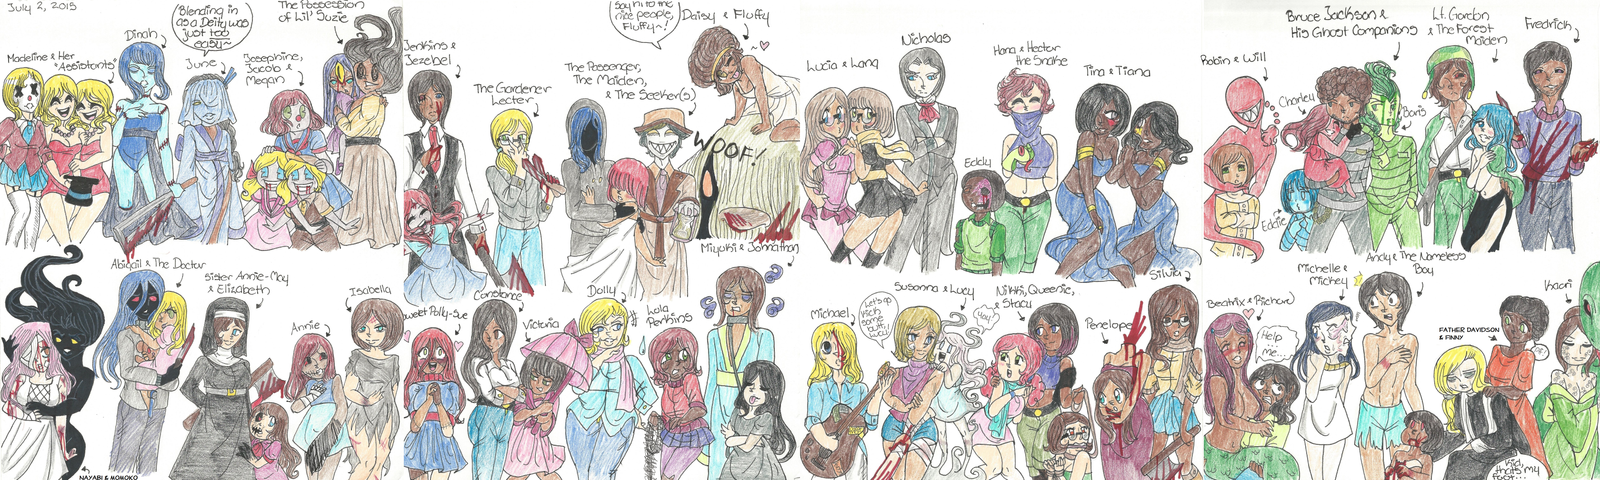 My Horror Characters (Part 1) by FunnyLover13